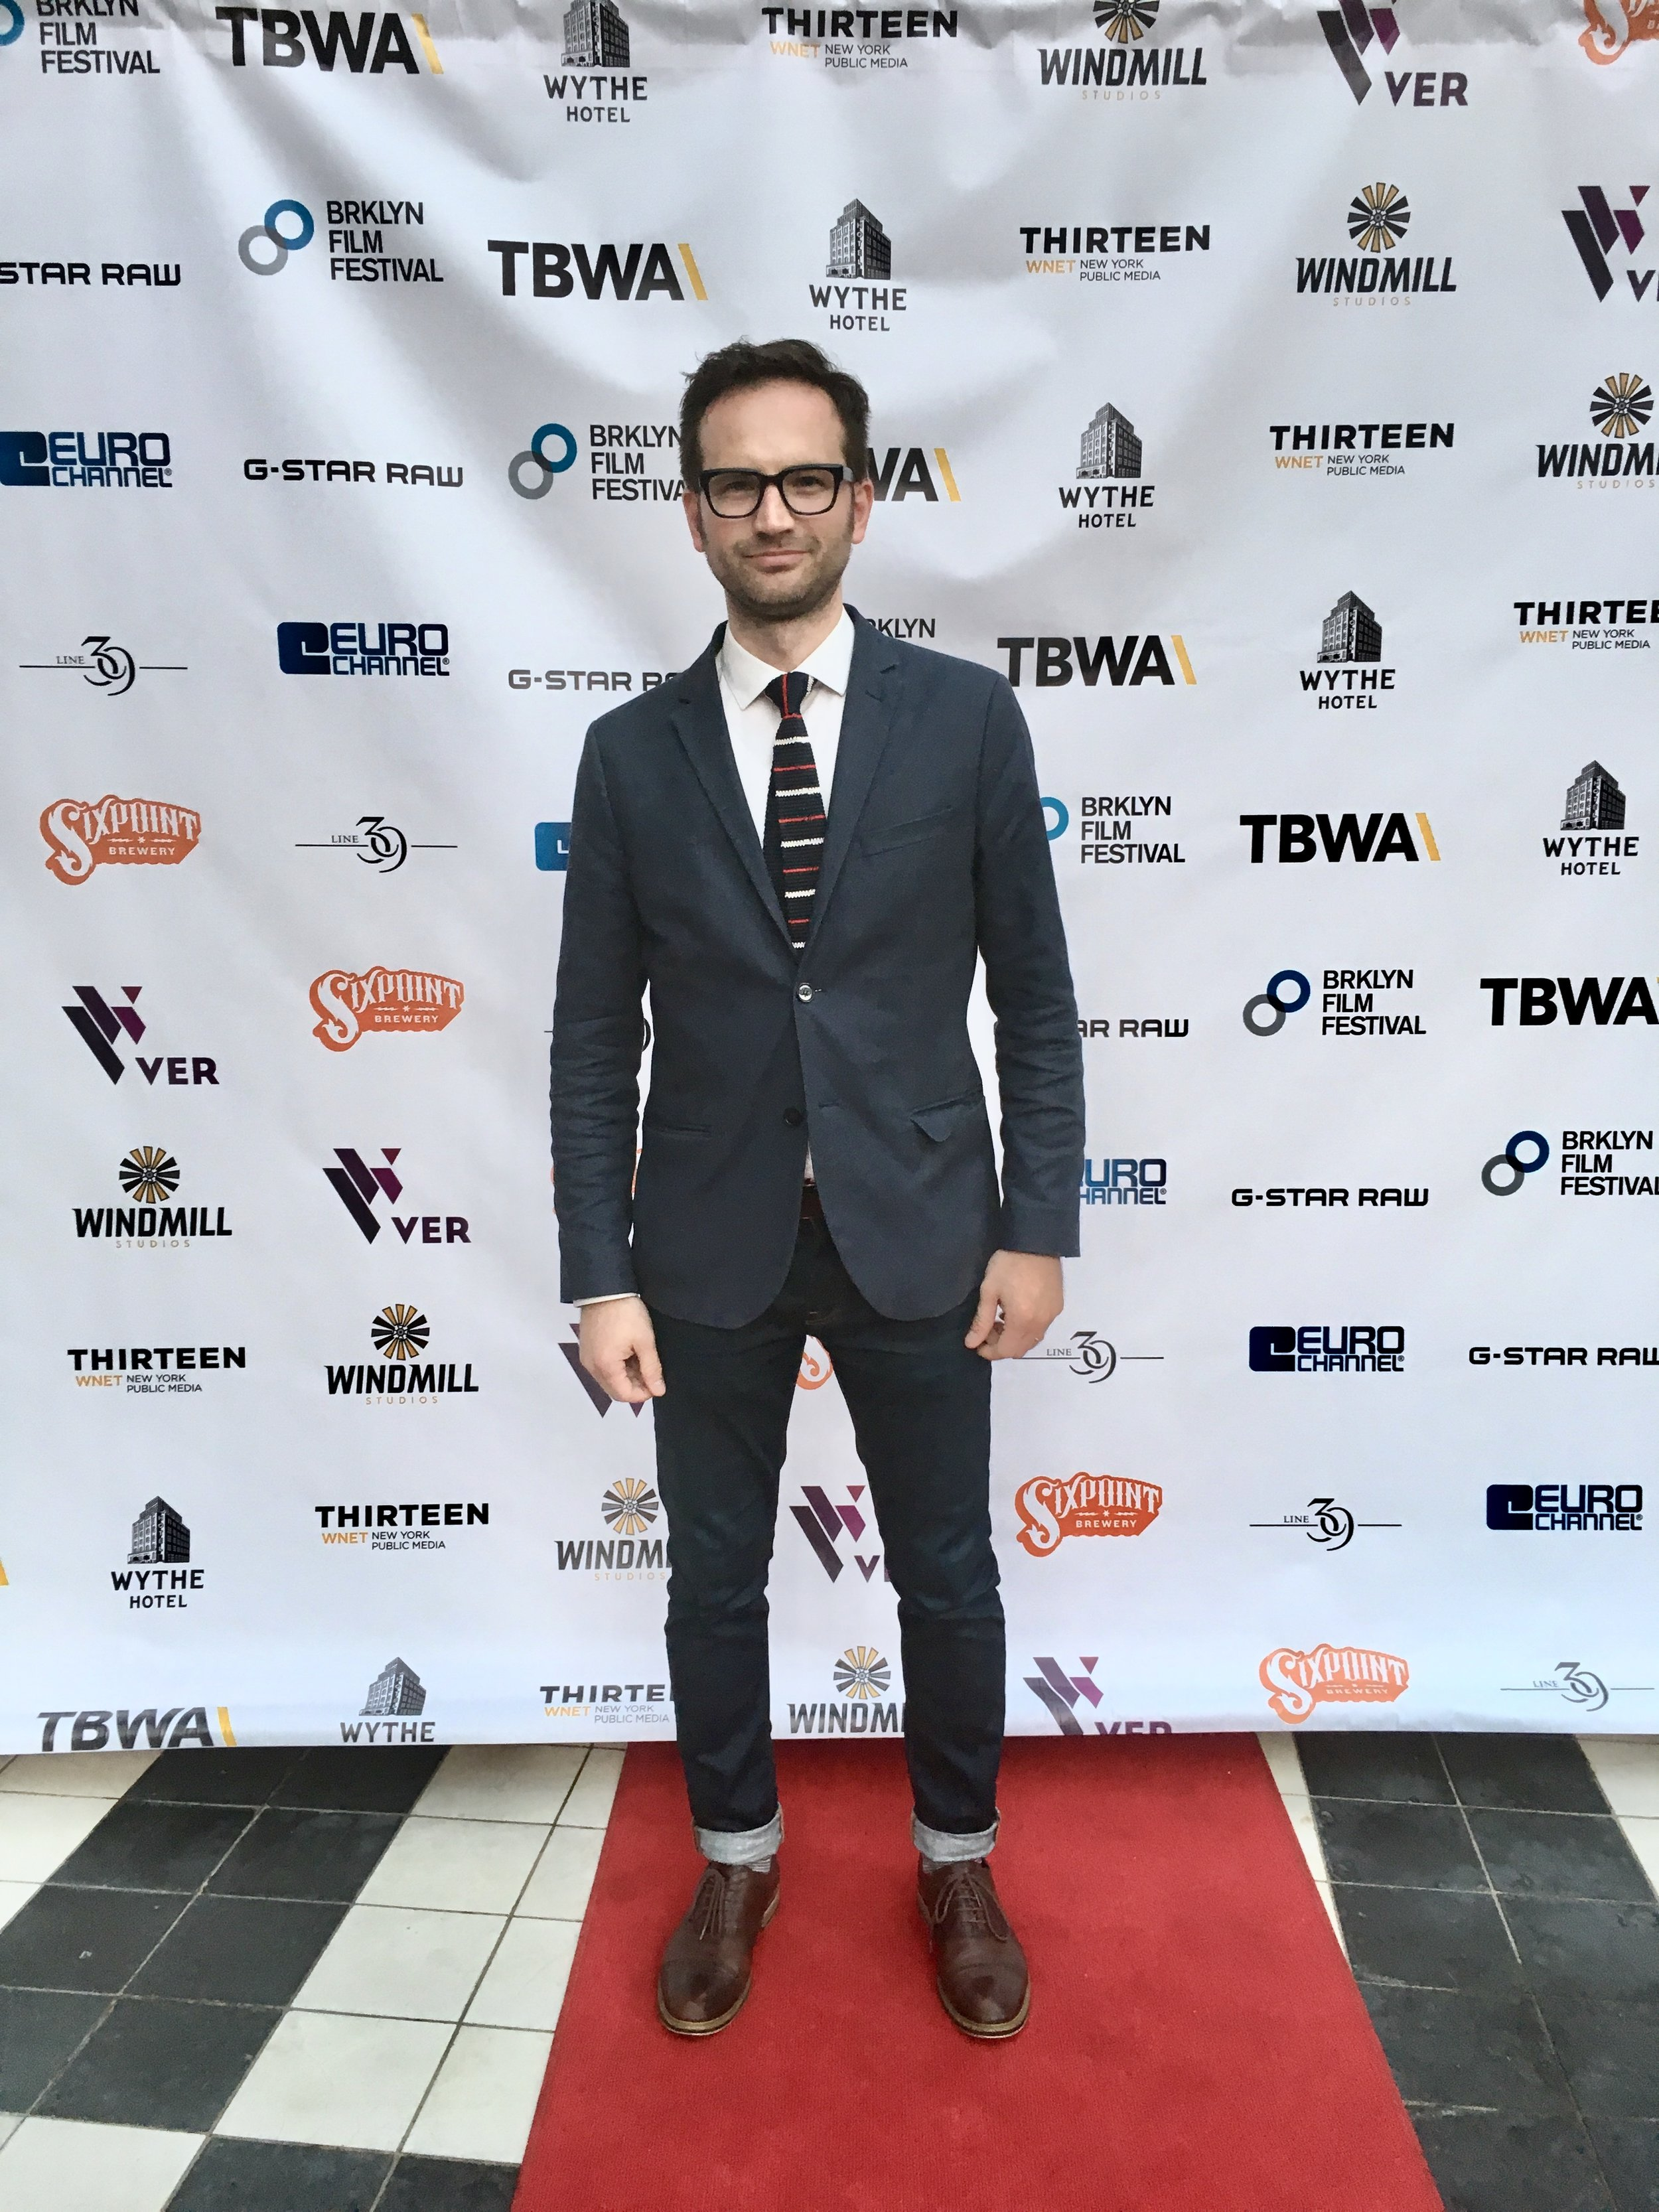 Opening Night at Brooklyn Film Festival 2018 - It was a pleasure serving as a judge for this years festivalJune 1st 2018